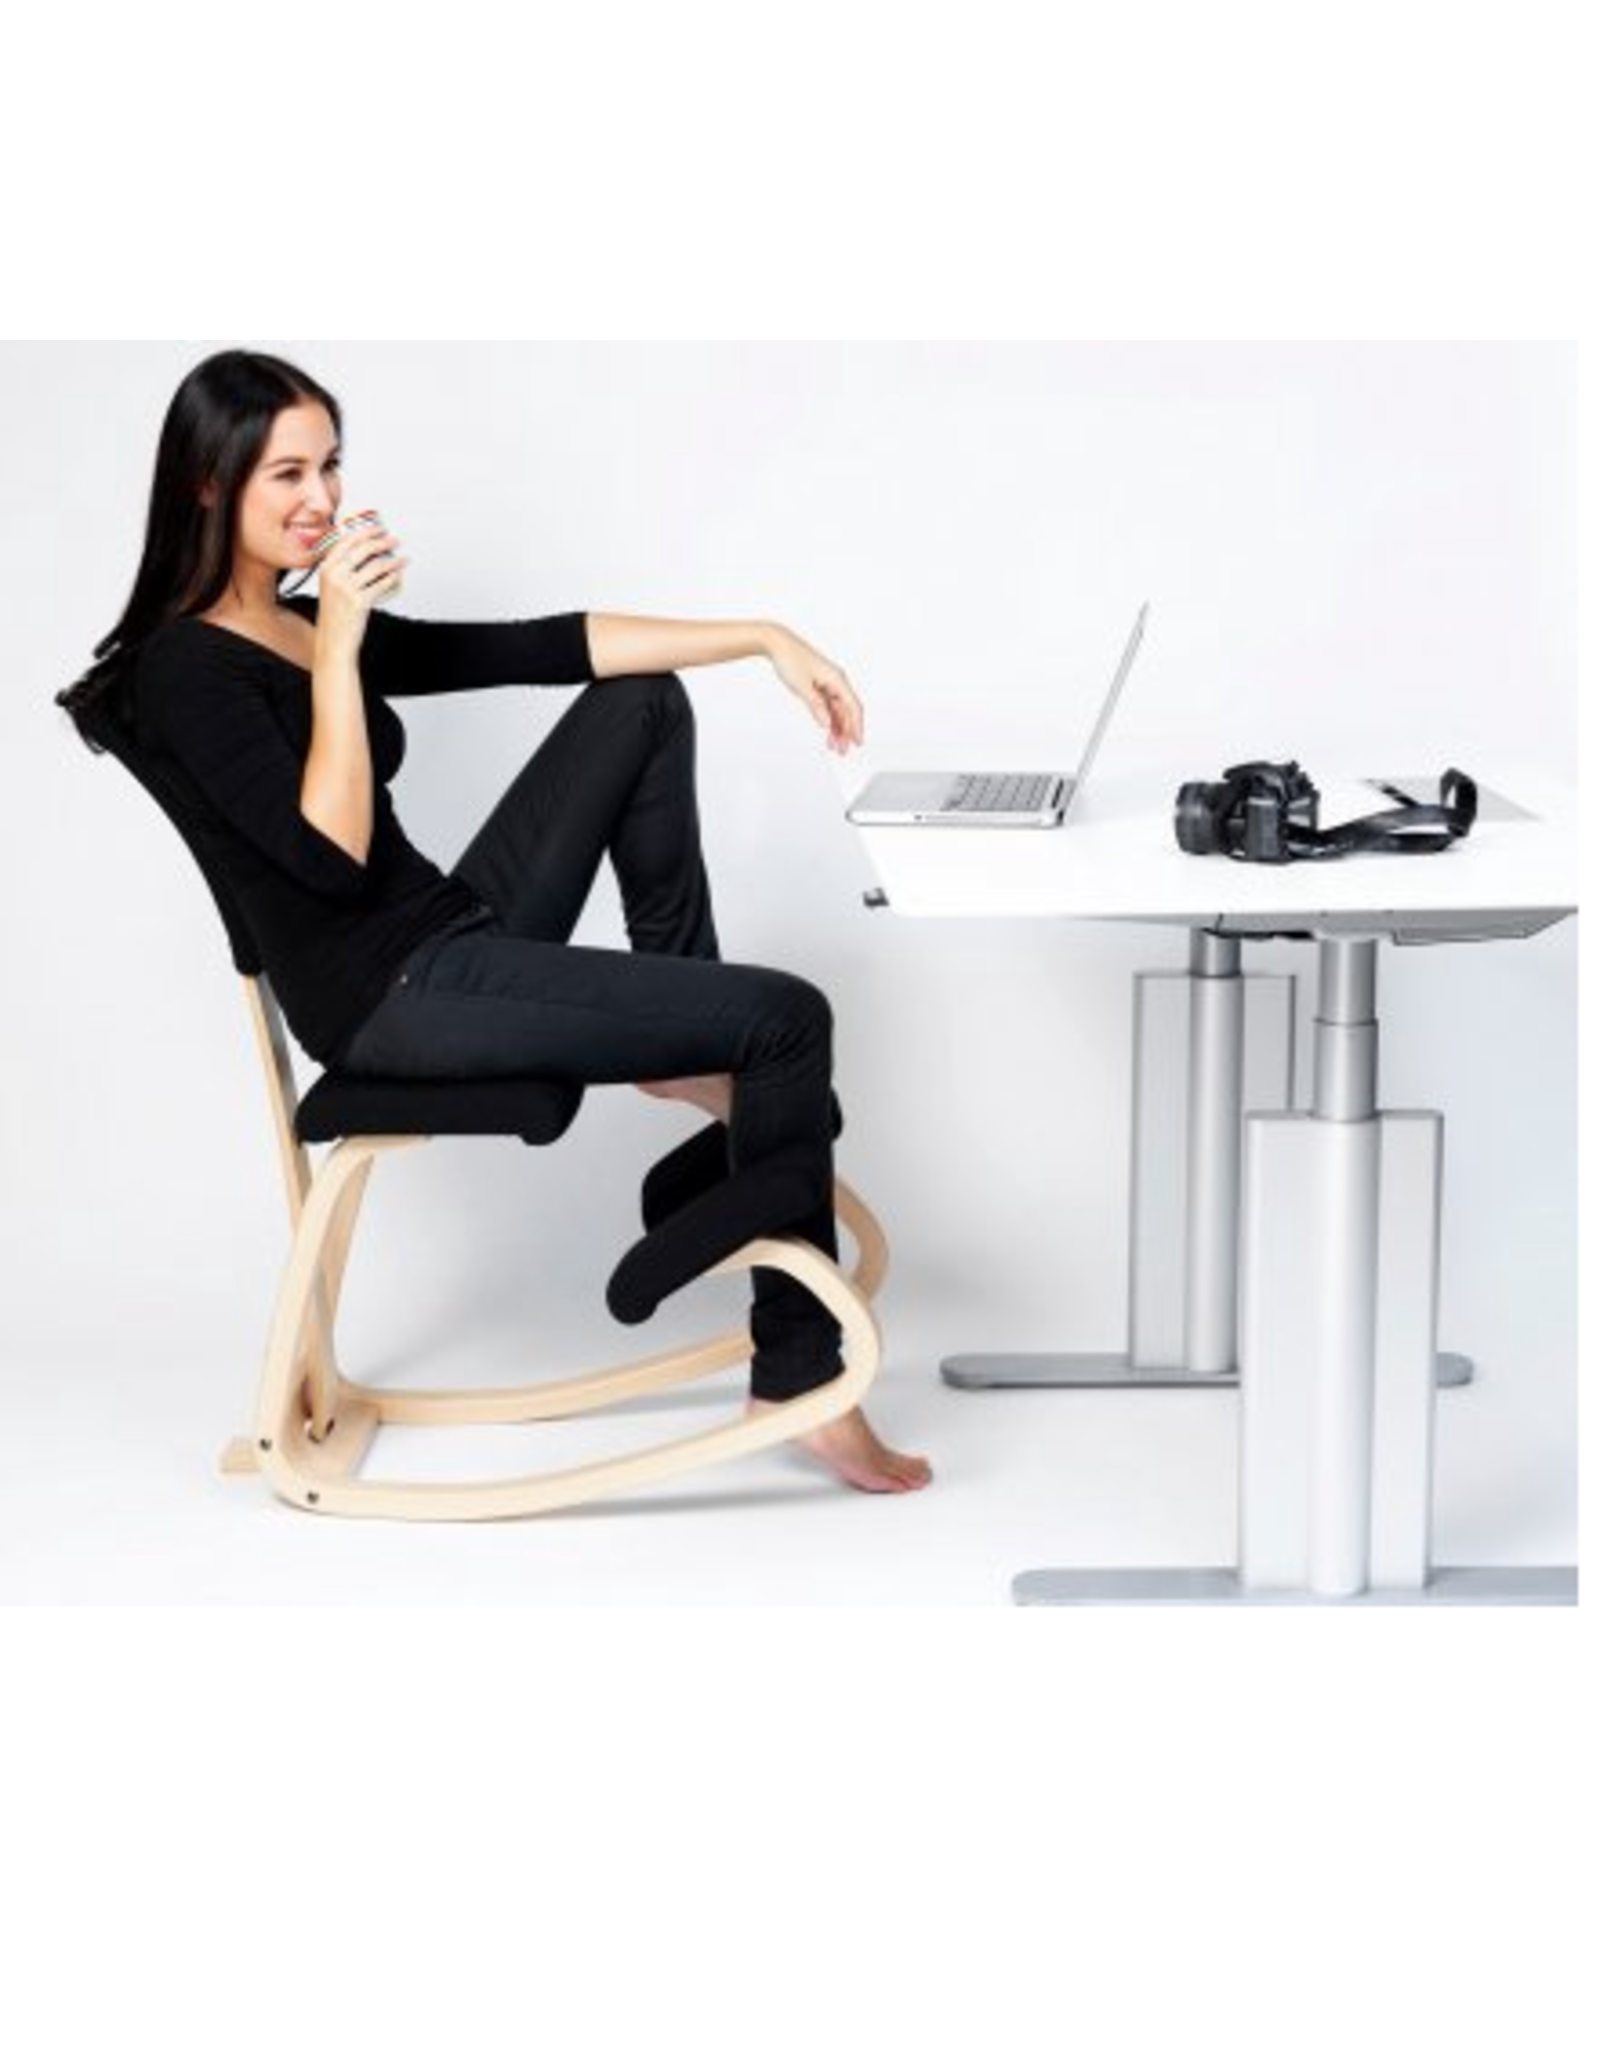 VARIABLE BALANS KNEELING CHAIR WITH VARIABLE BACK